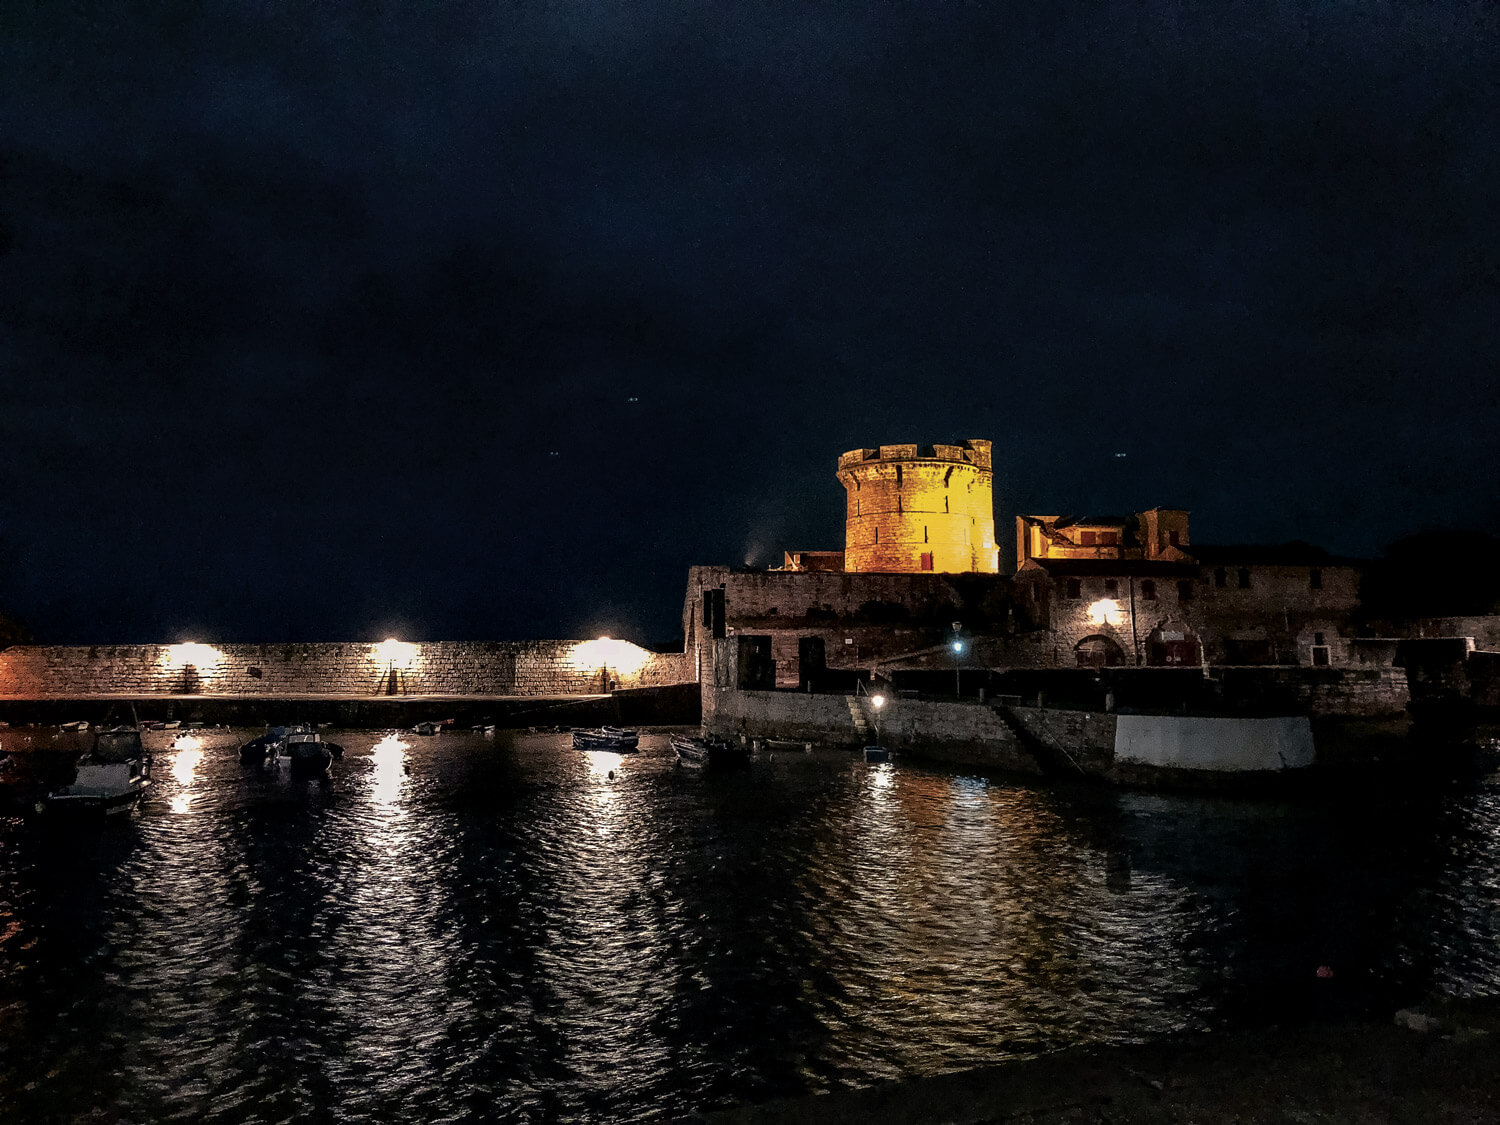 ciboure socoa fort atlantique pays basque illumination nuit lumieres